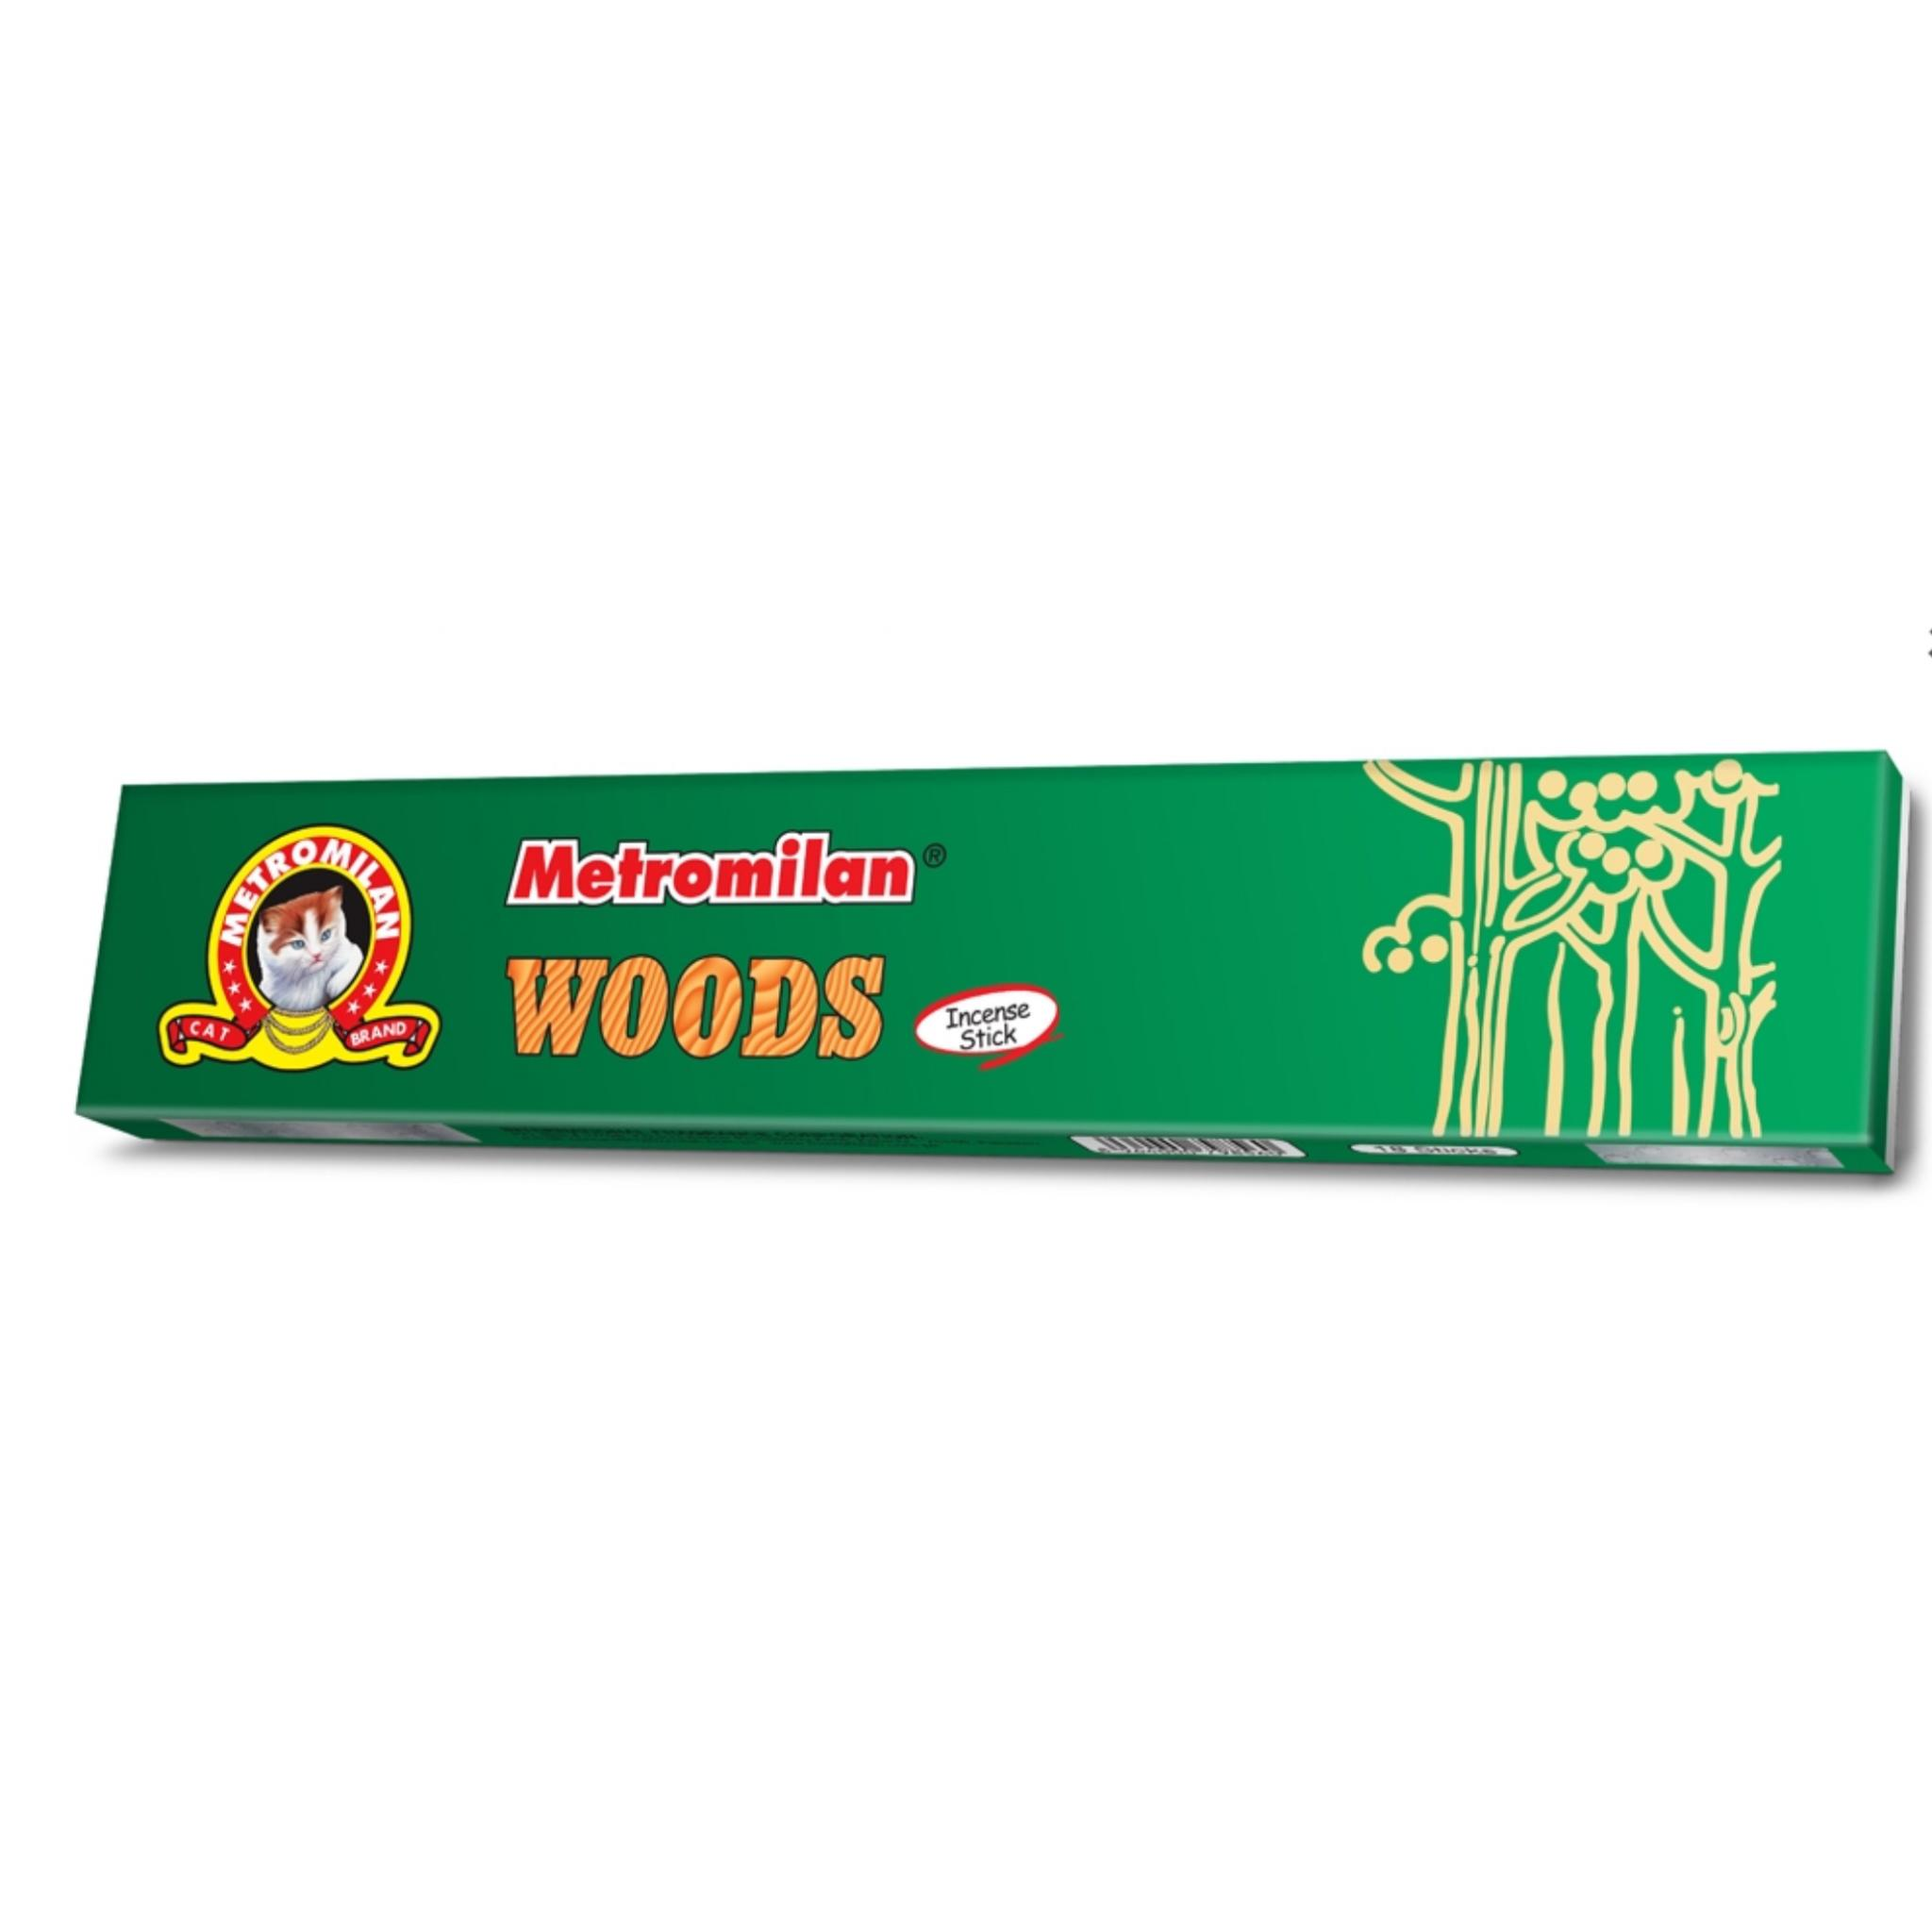 Metromilan Woods Incense Stick